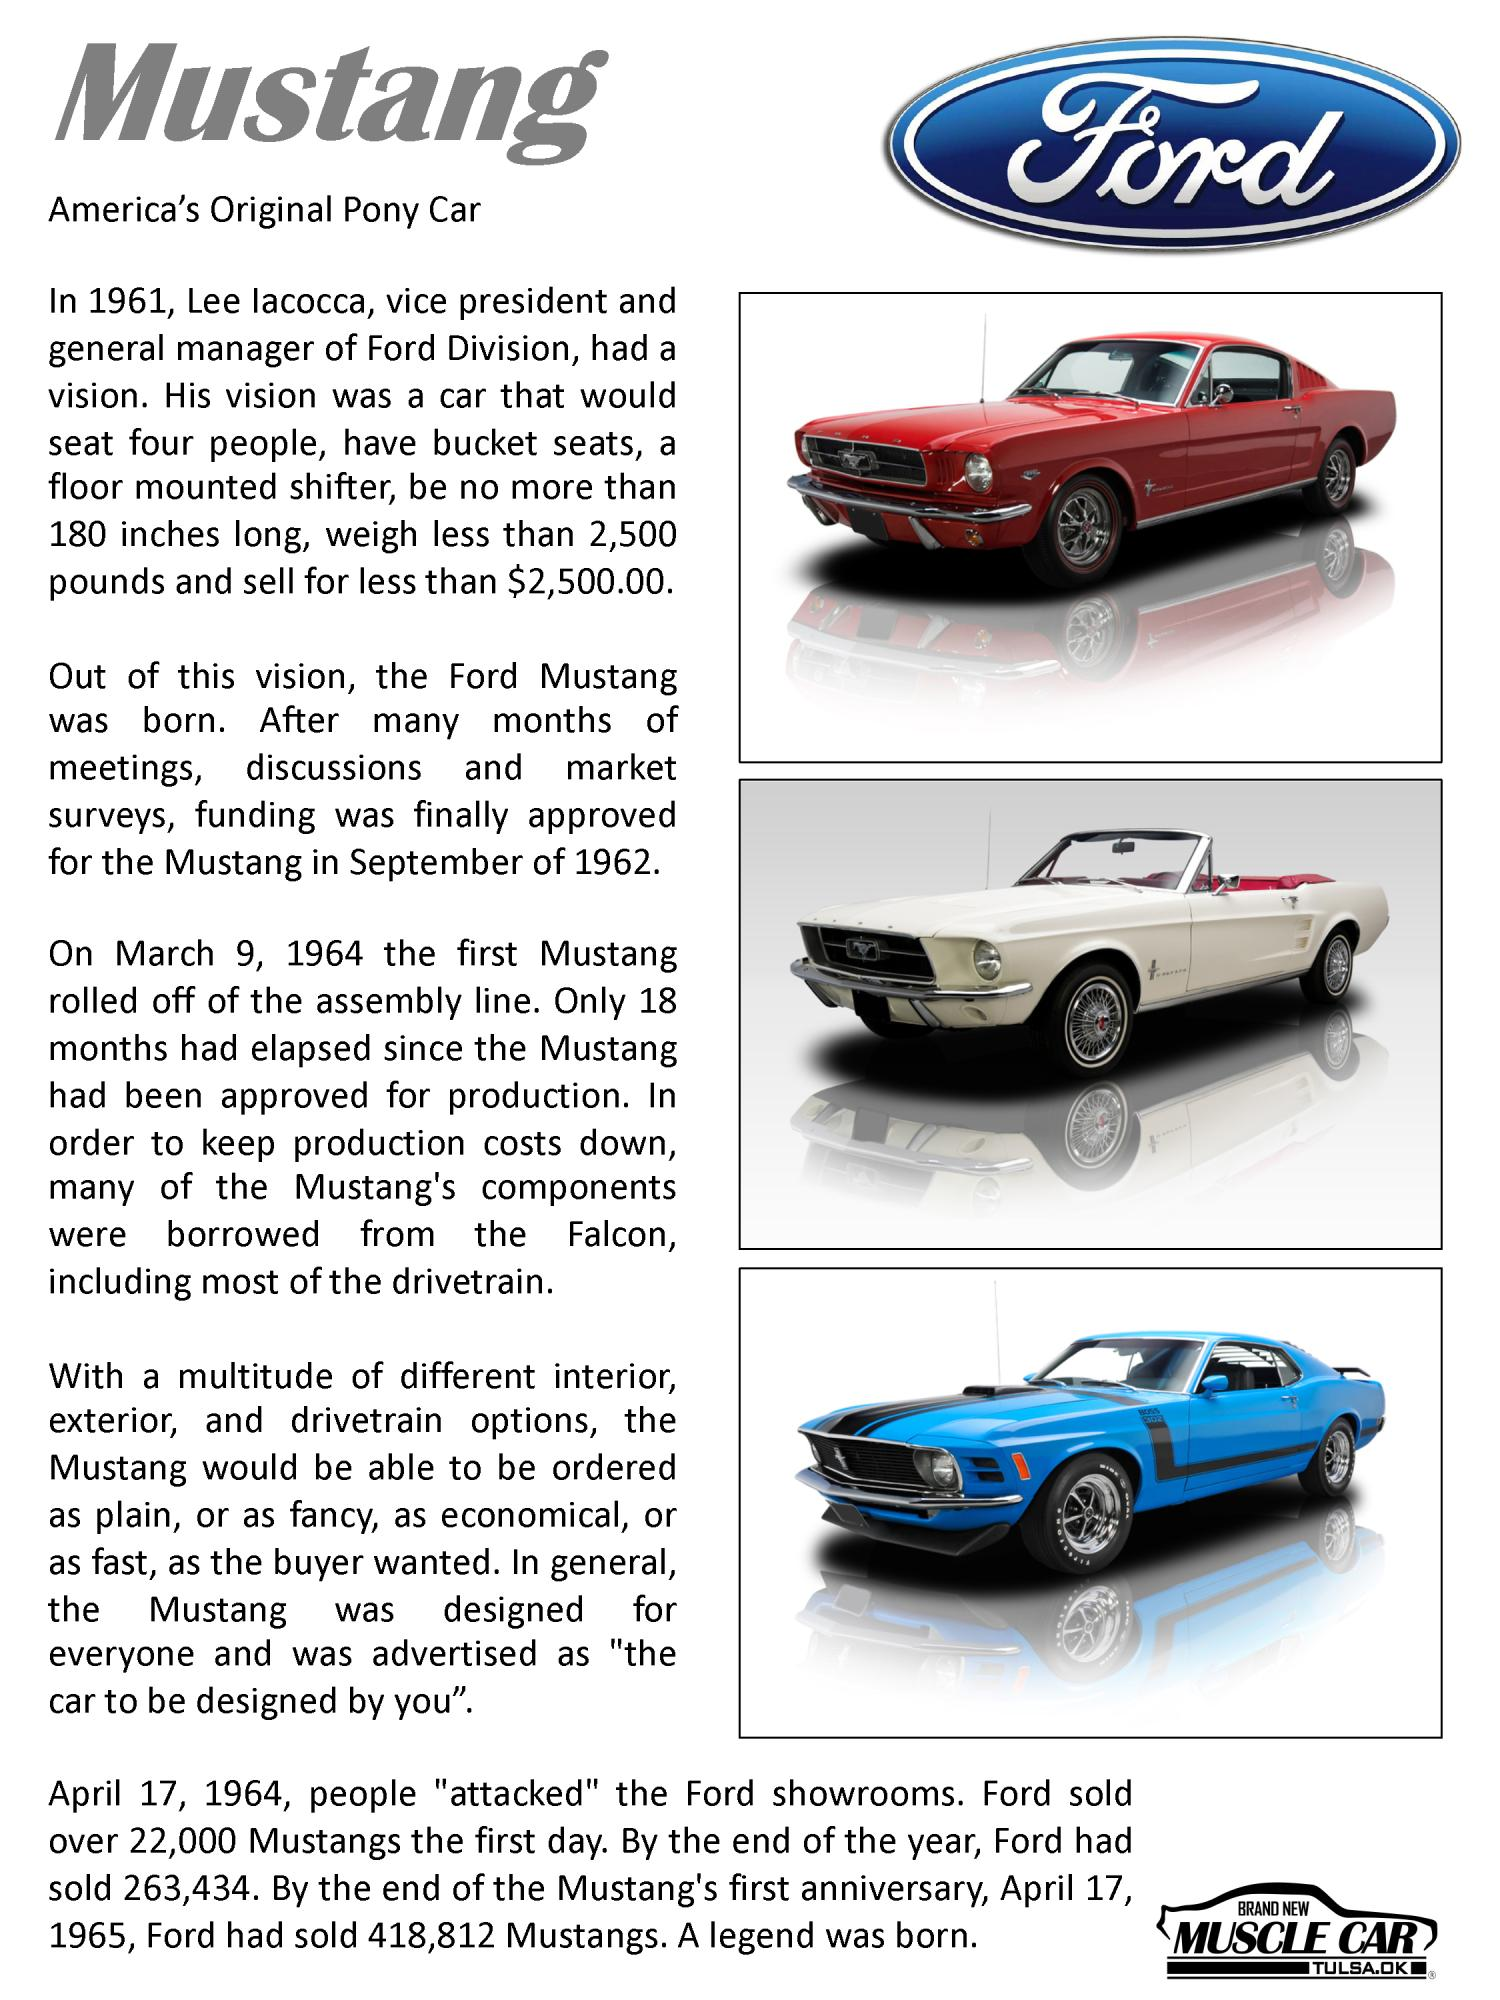 Ford Mustang Brochure Page 3 Brand New Muscle Car Eleanor Mustang Replica Builder For Sale Tulsa Oklahoma